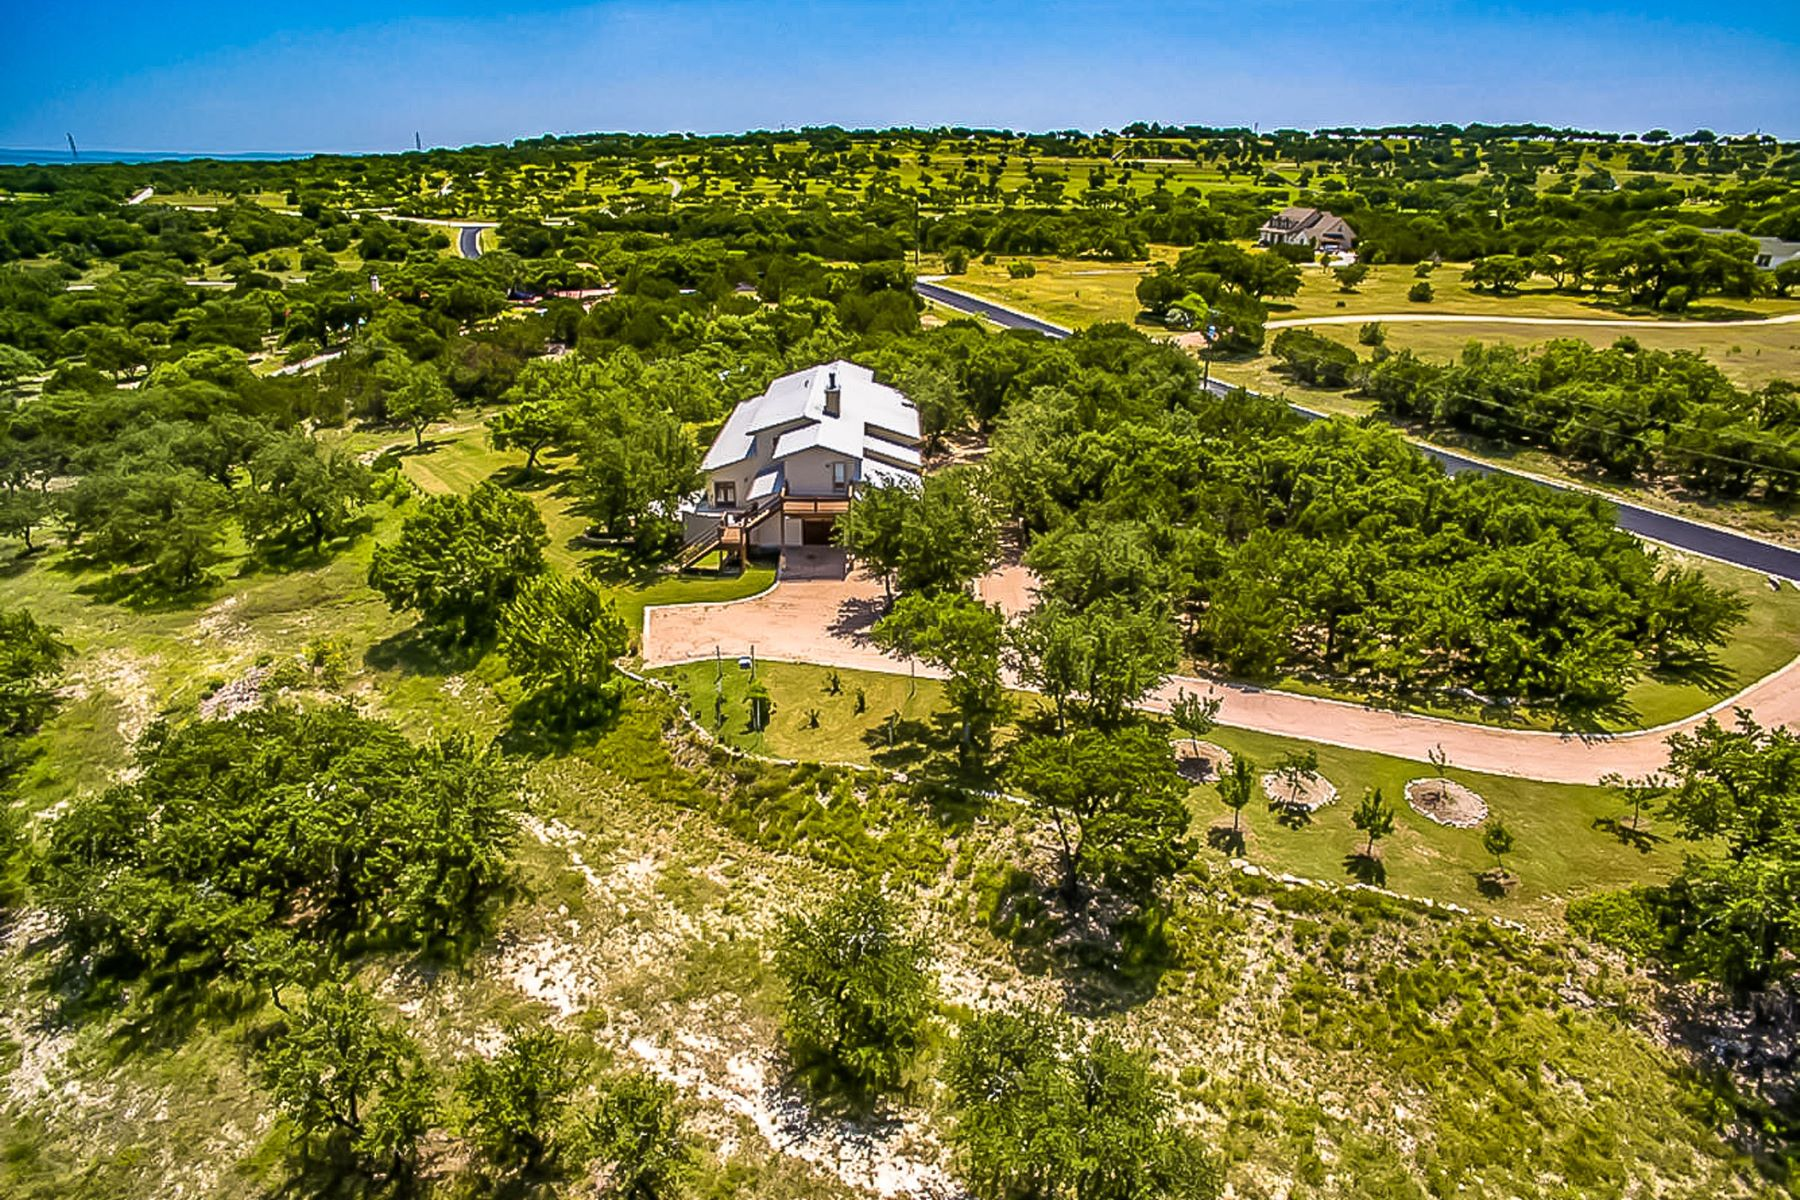 Fazenda / Rancho / Plantação para Venda às Panoramic Views of the Hill Country 140 Granite Ridge Dr Spicewood, Texas, 78669 Estados Unidos